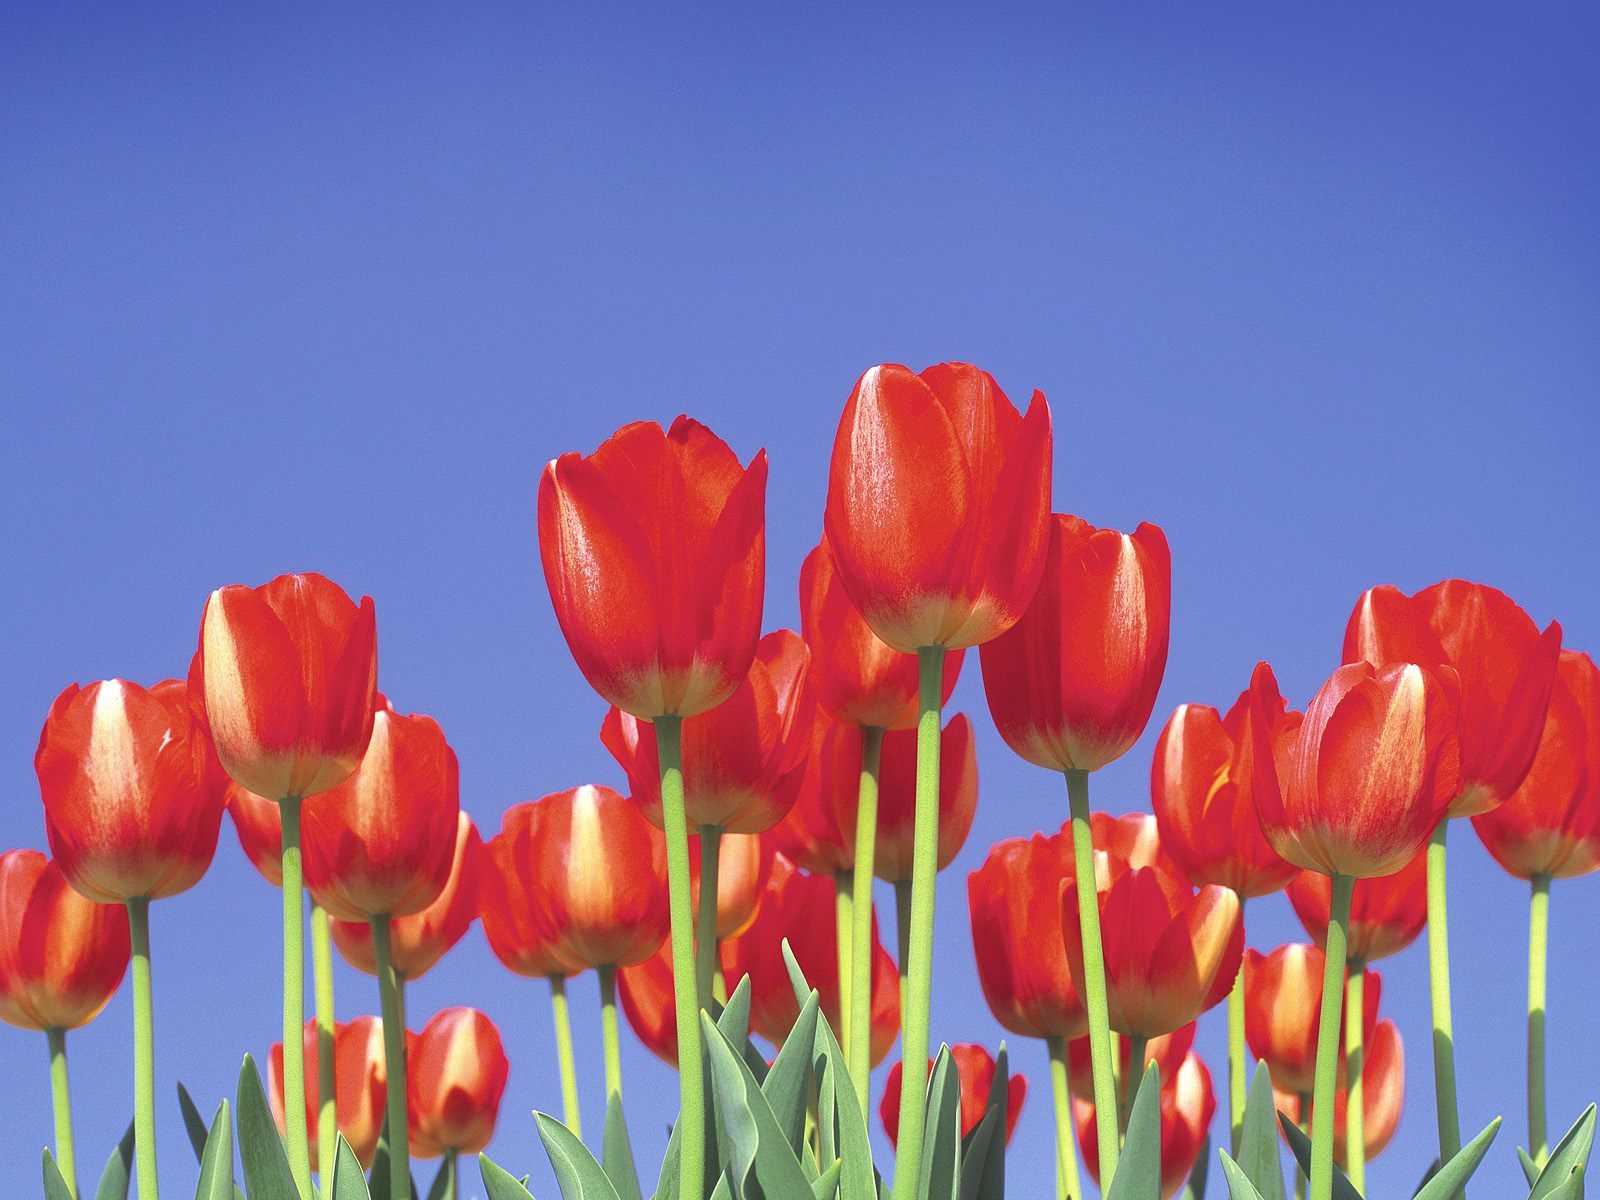 nature Flowers tulips red